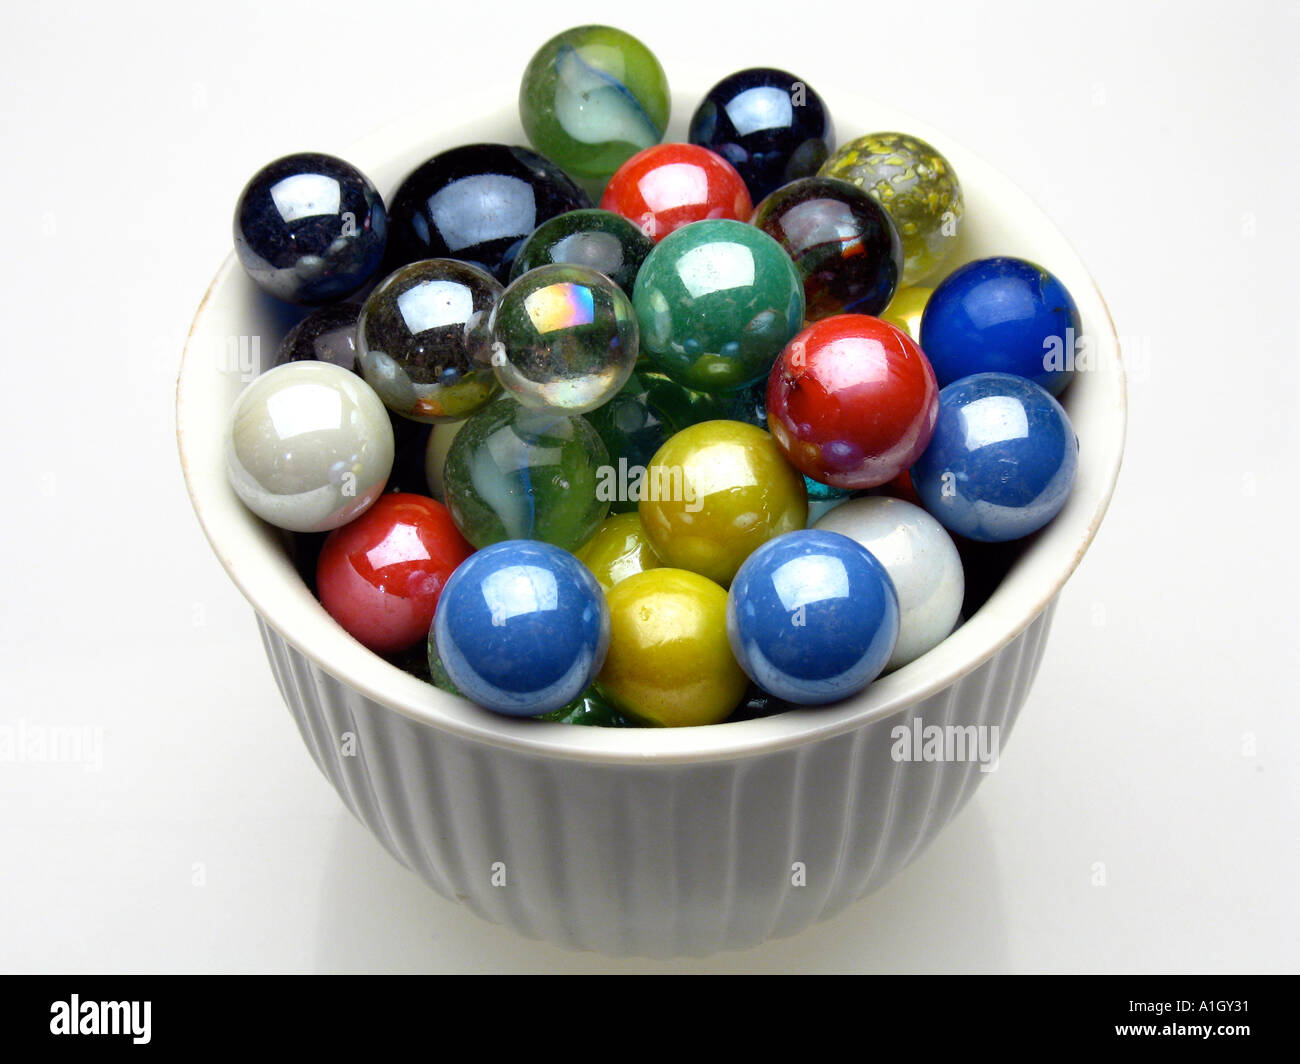 A Bowl Of Marbles Stock Photo Royalty Free Image 3349296